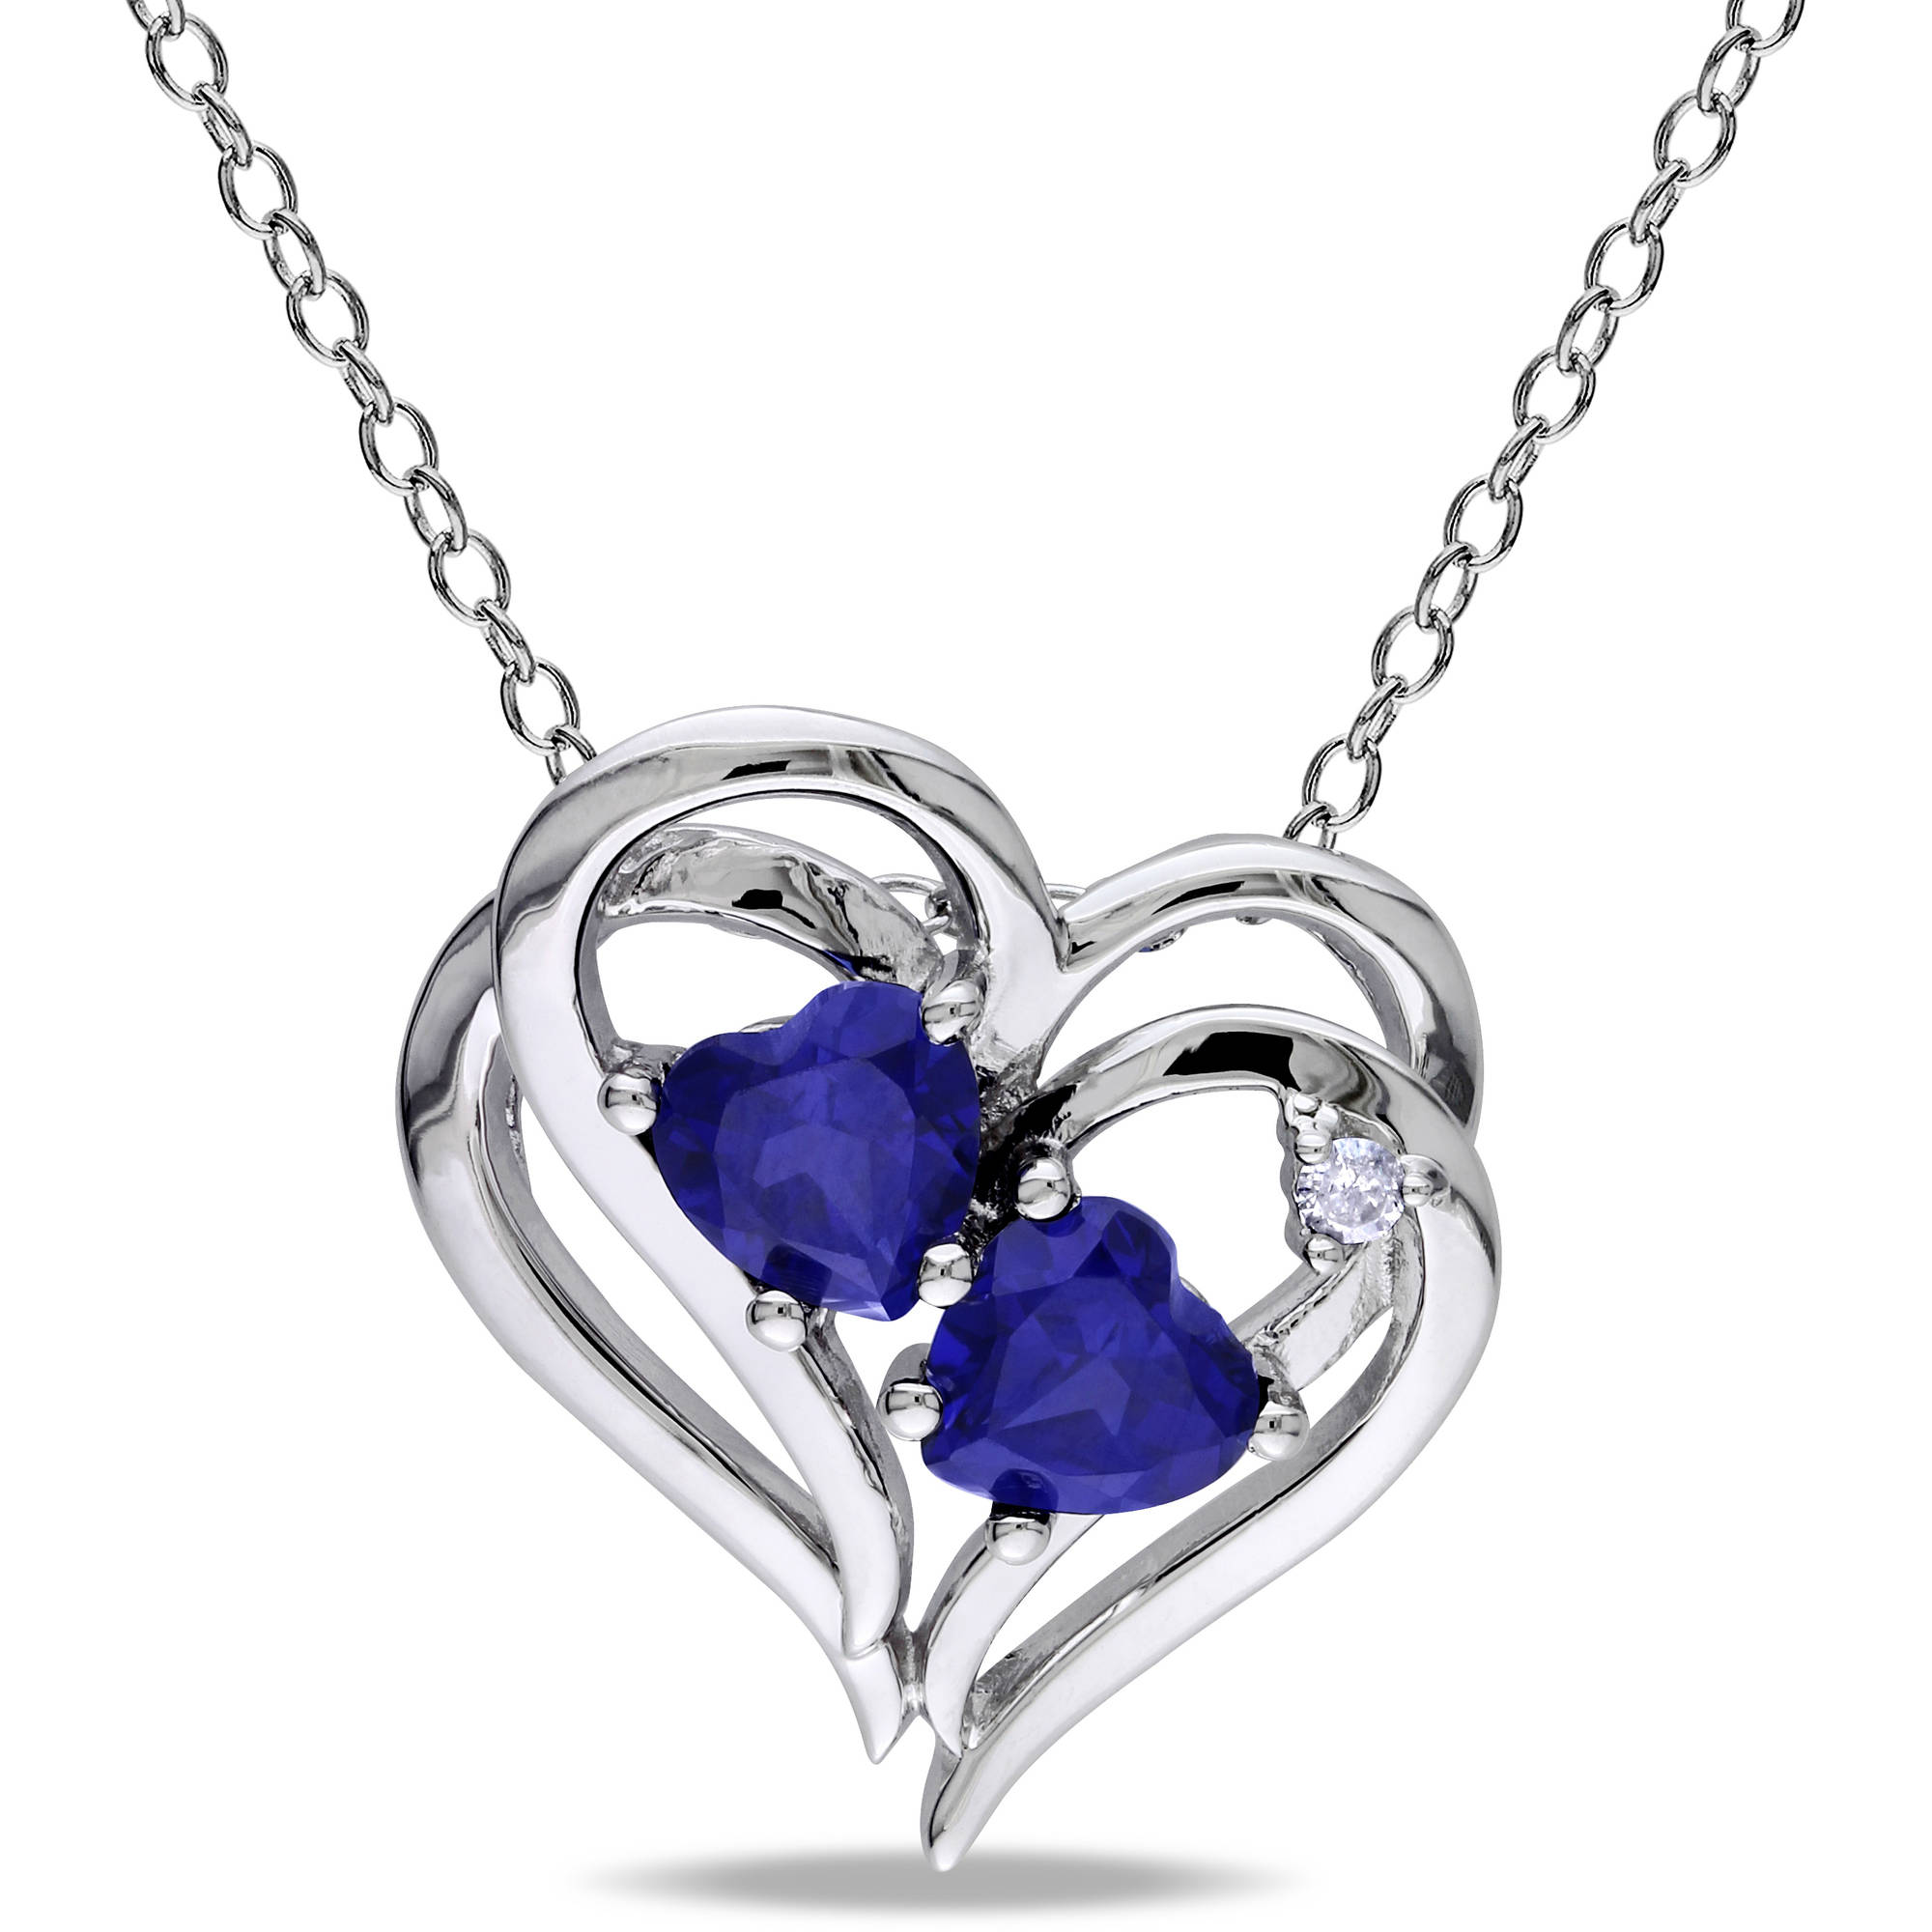 Tangelo 1-1/8 Carat T.G.W. Created Blue Sapphire and Diamond-Accent Sterling Silver Heart Pendant, 18""